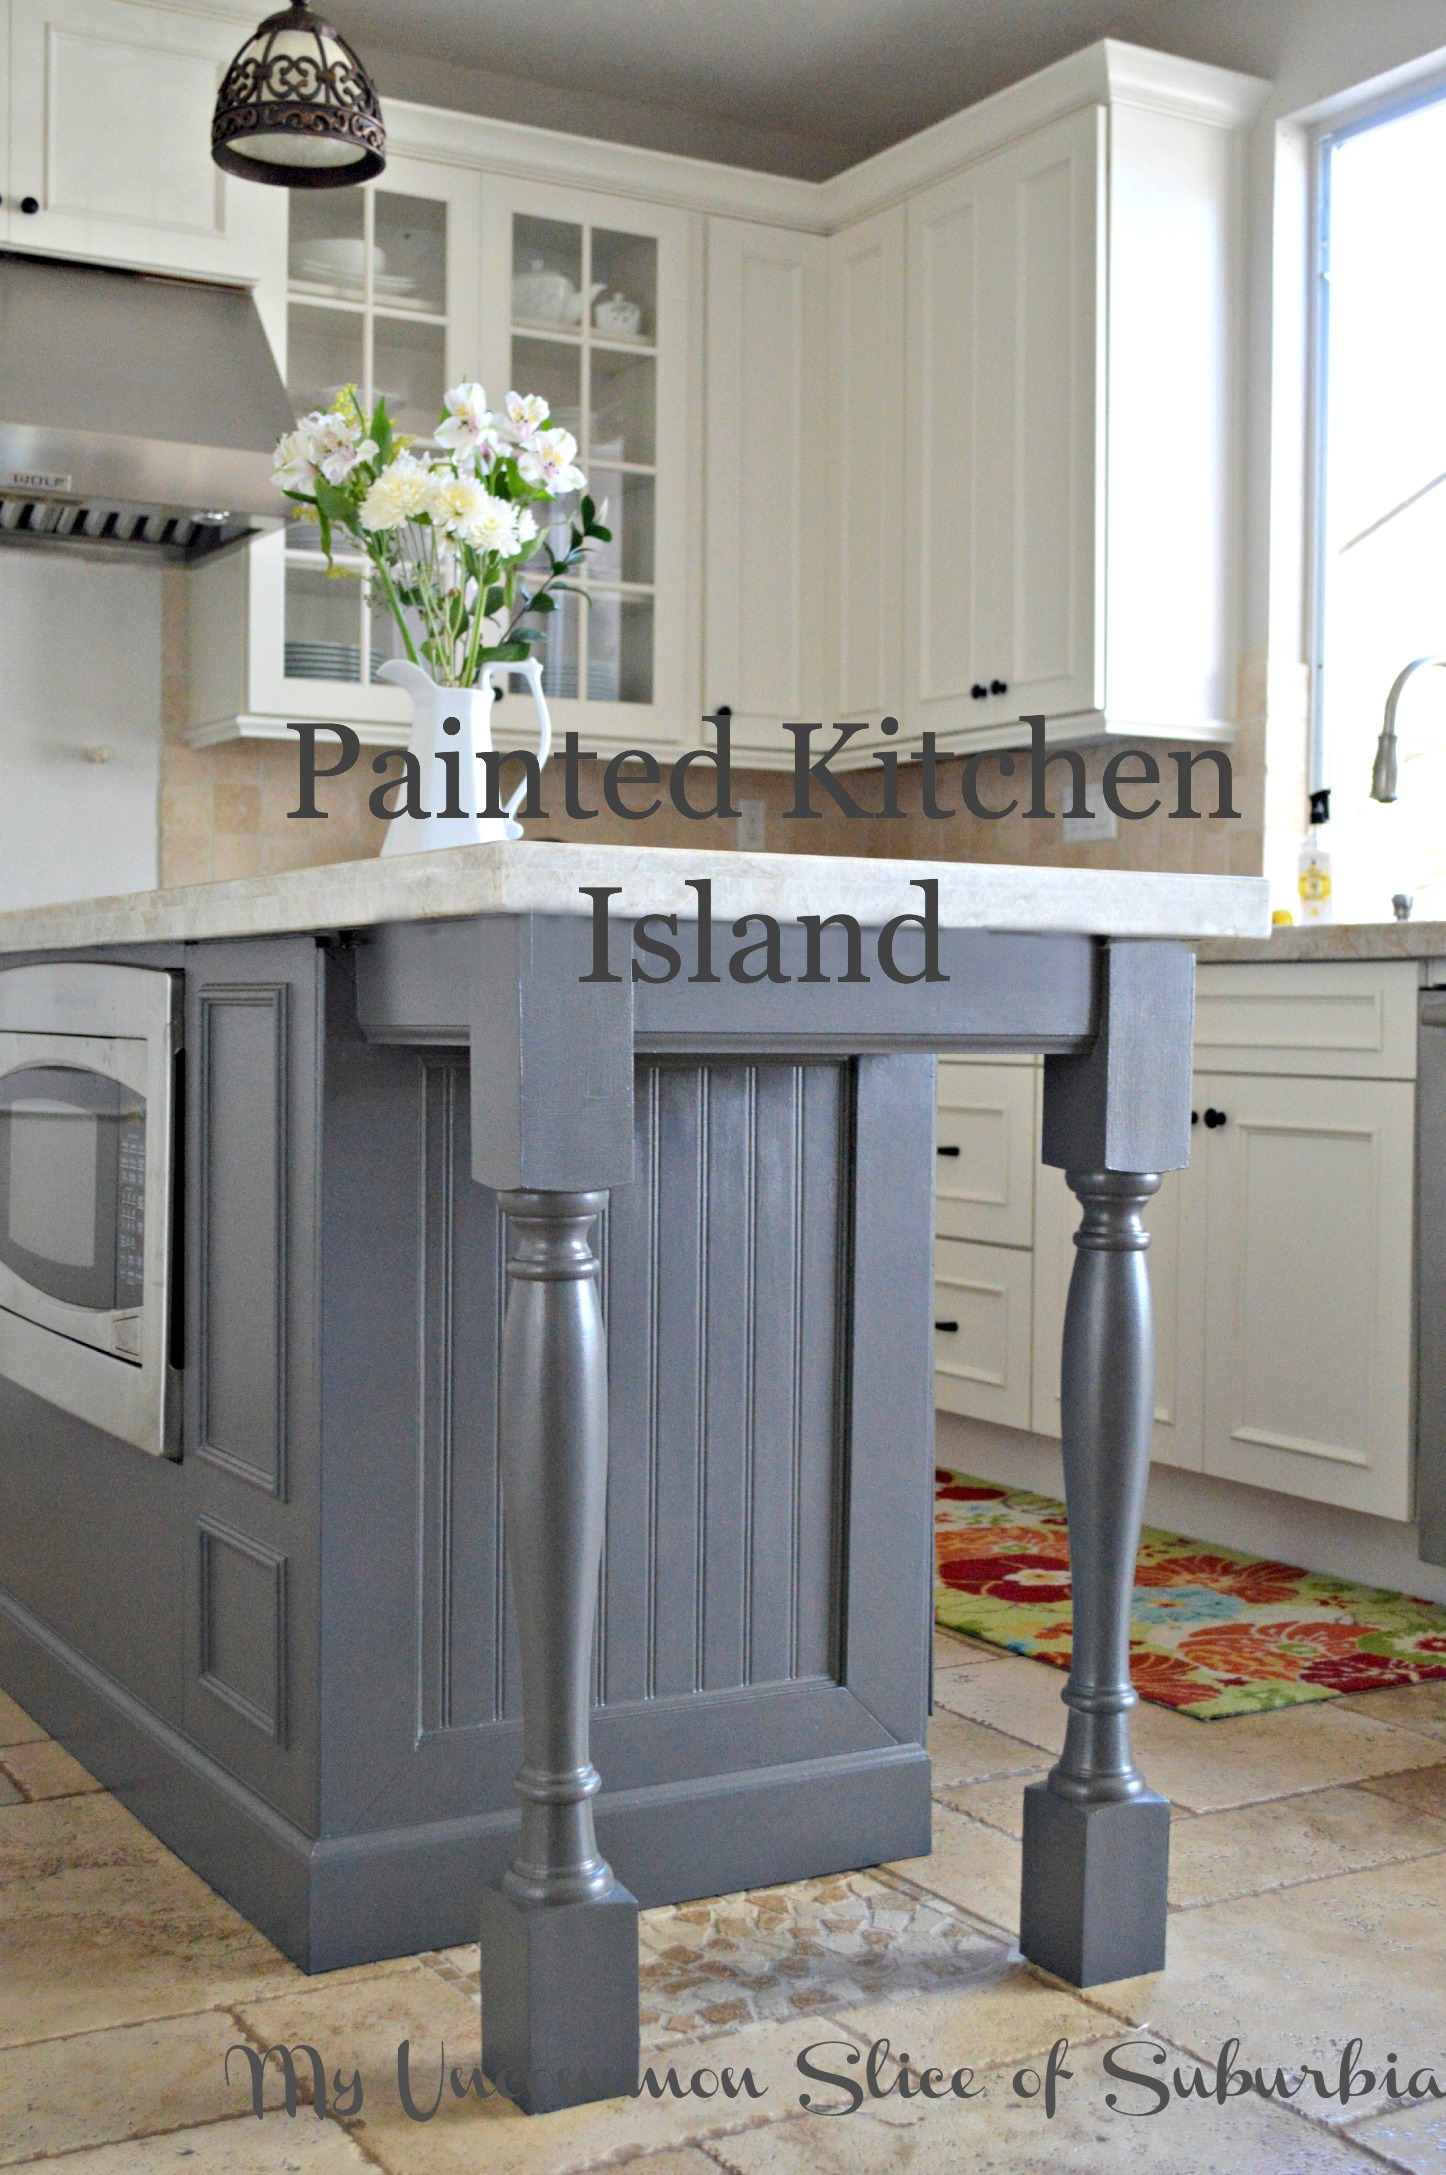 Kitchen-Island-how-to-paint Painted Kitchen Island Ideas With Posts on kitchen island with support beams, kitchen column ideas, kitchen island design ideas,